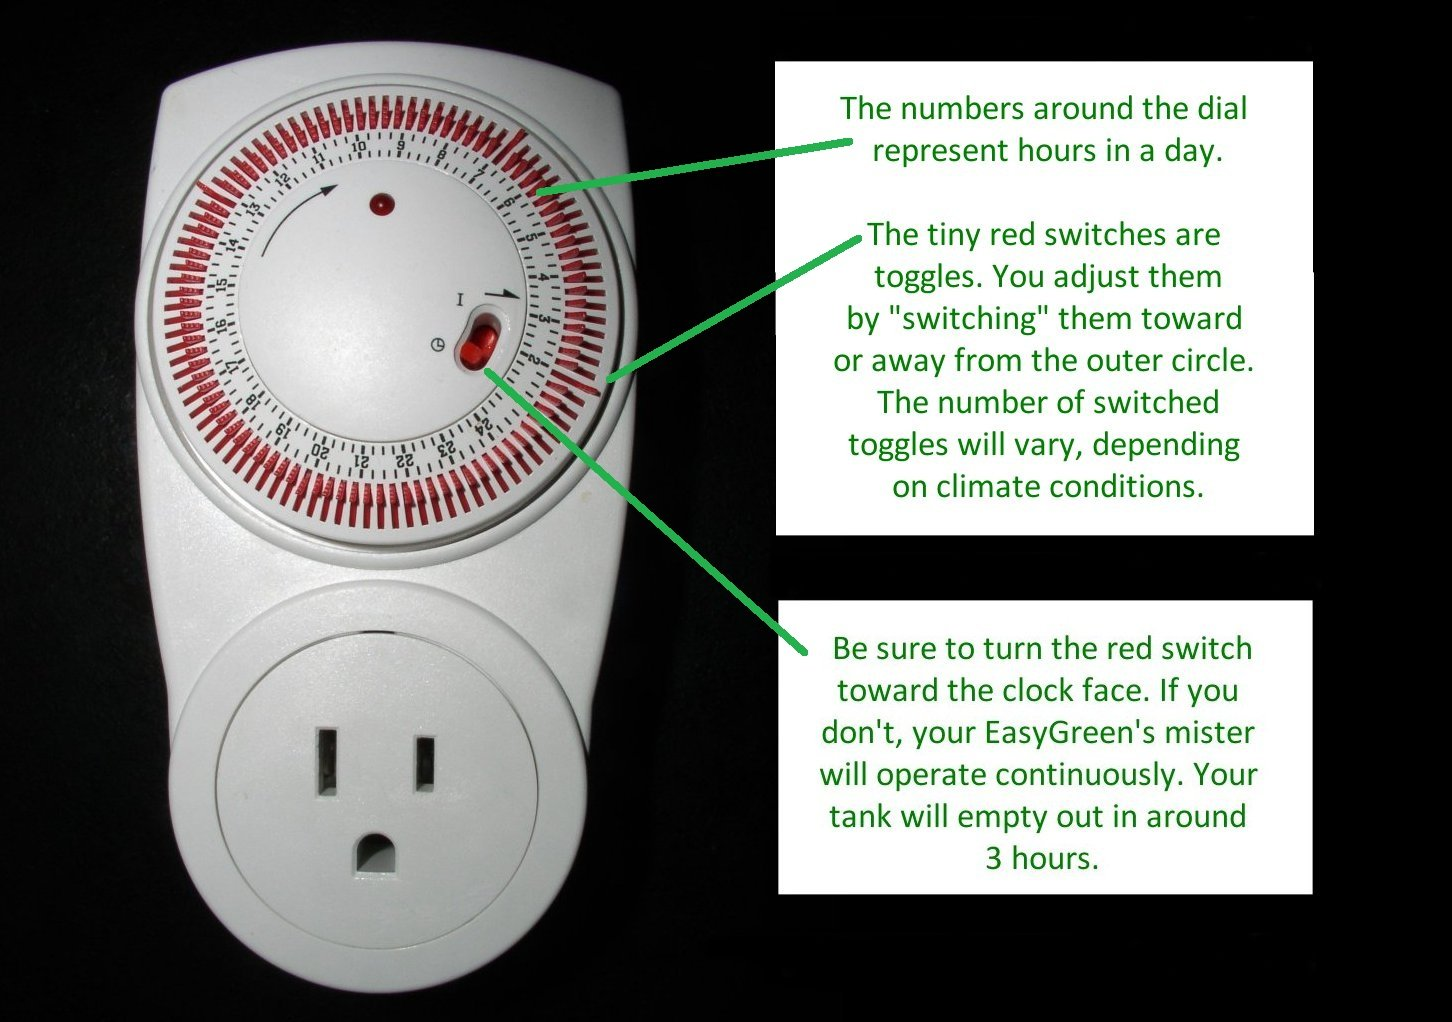 Timer with red toggles